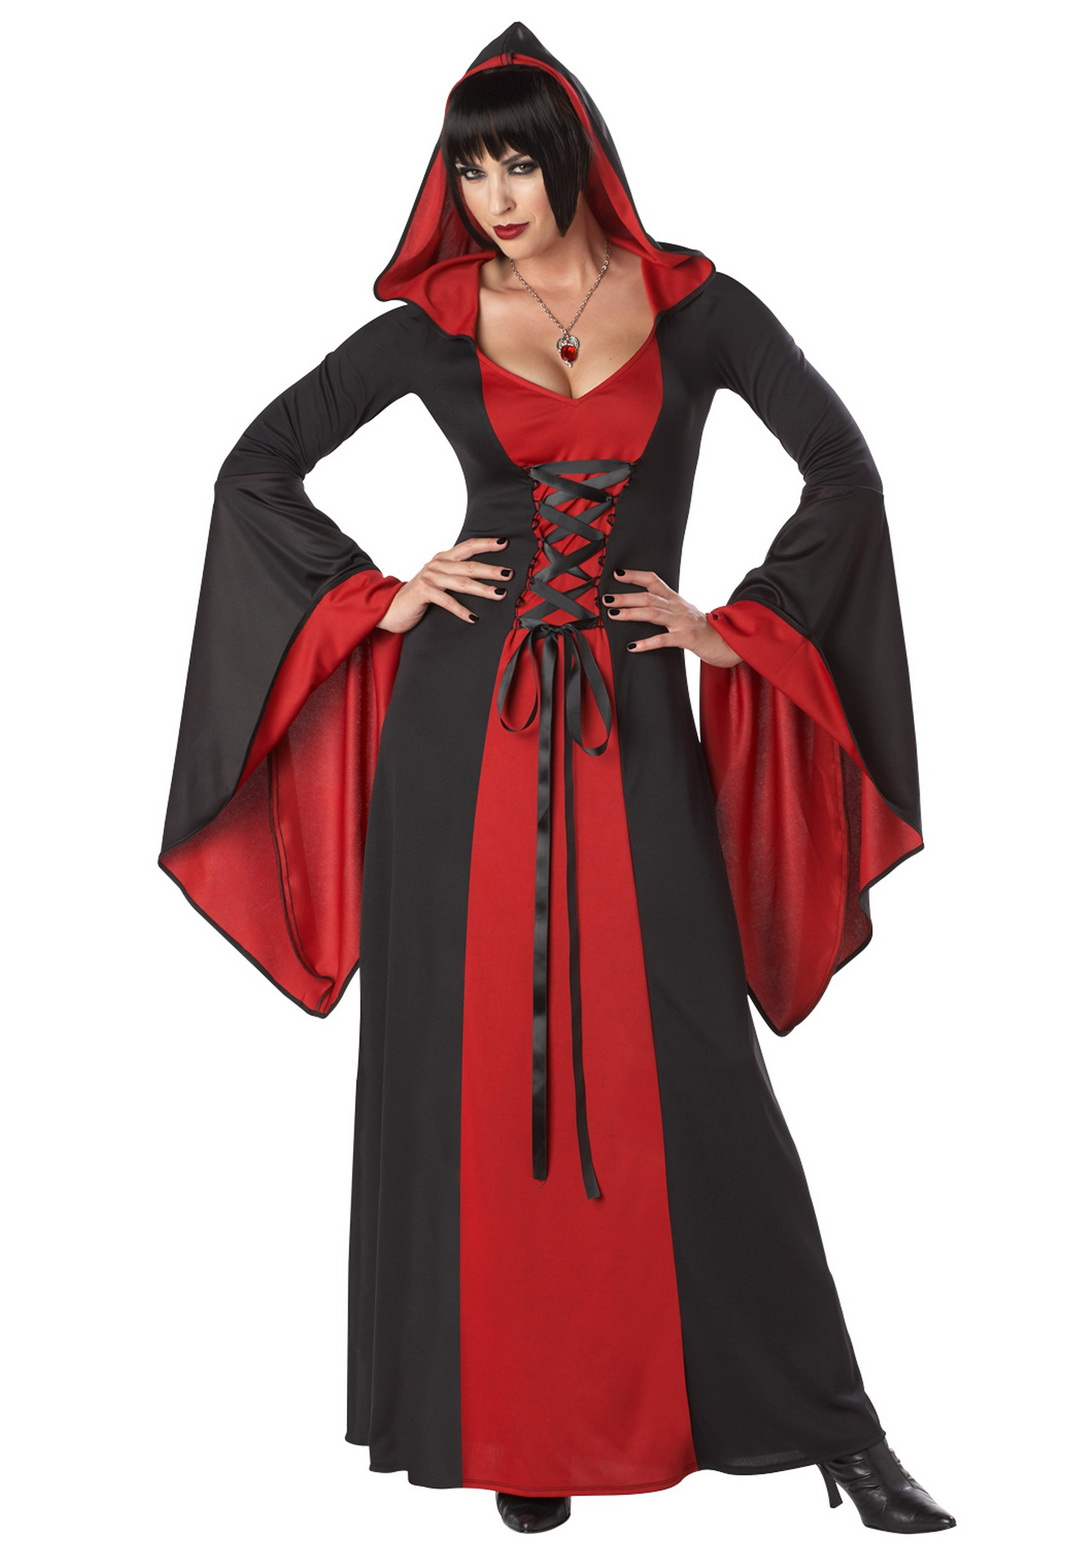 Adult Red Black Female Hooded Robe Costume